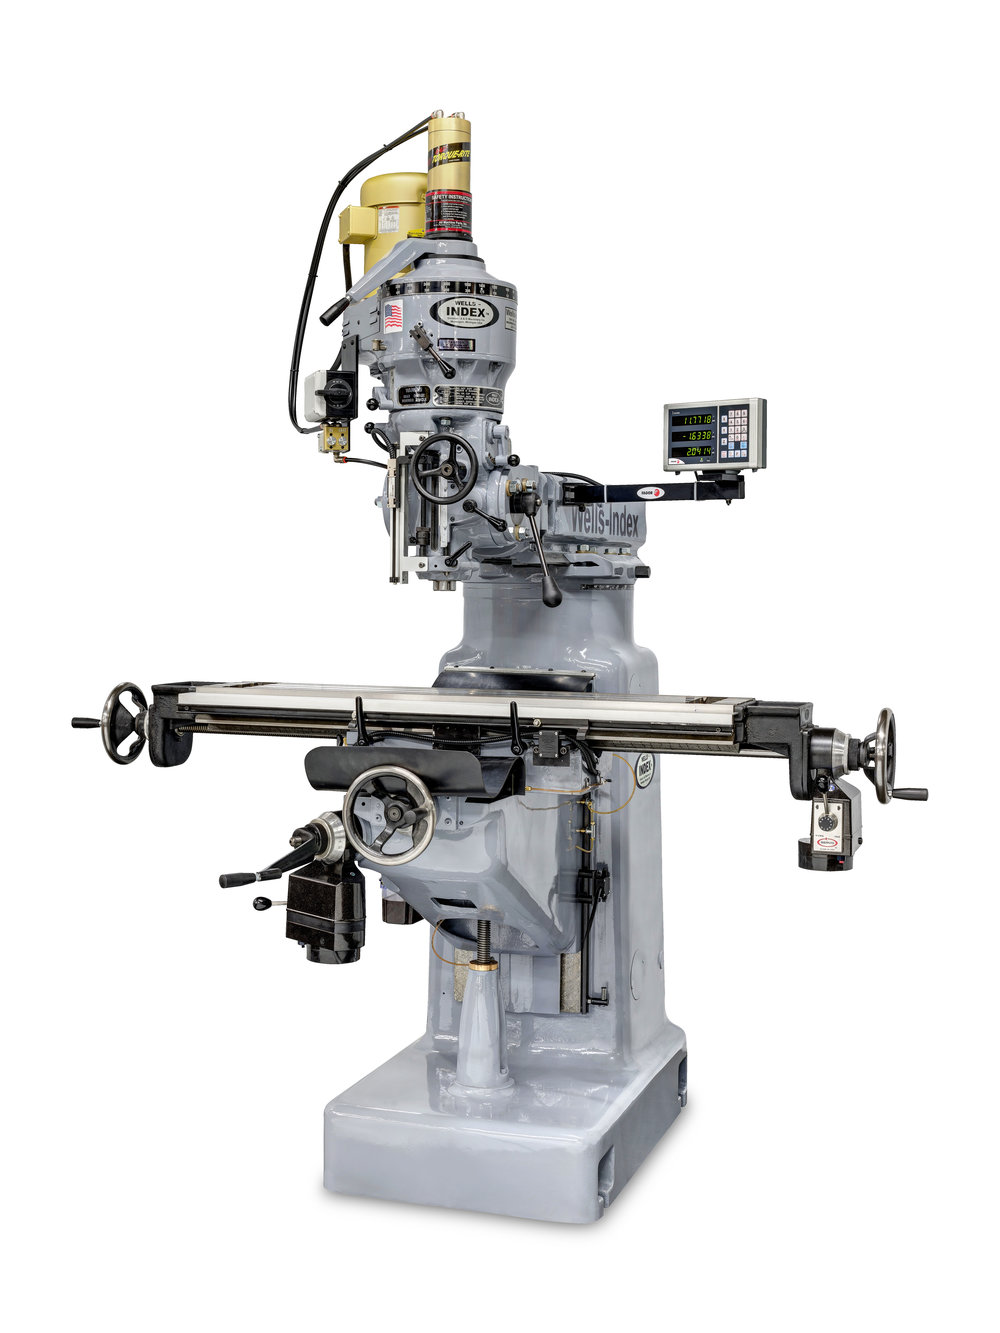 Wells-Index 847 Manual Milling Machine Blue Photon with power drawbar